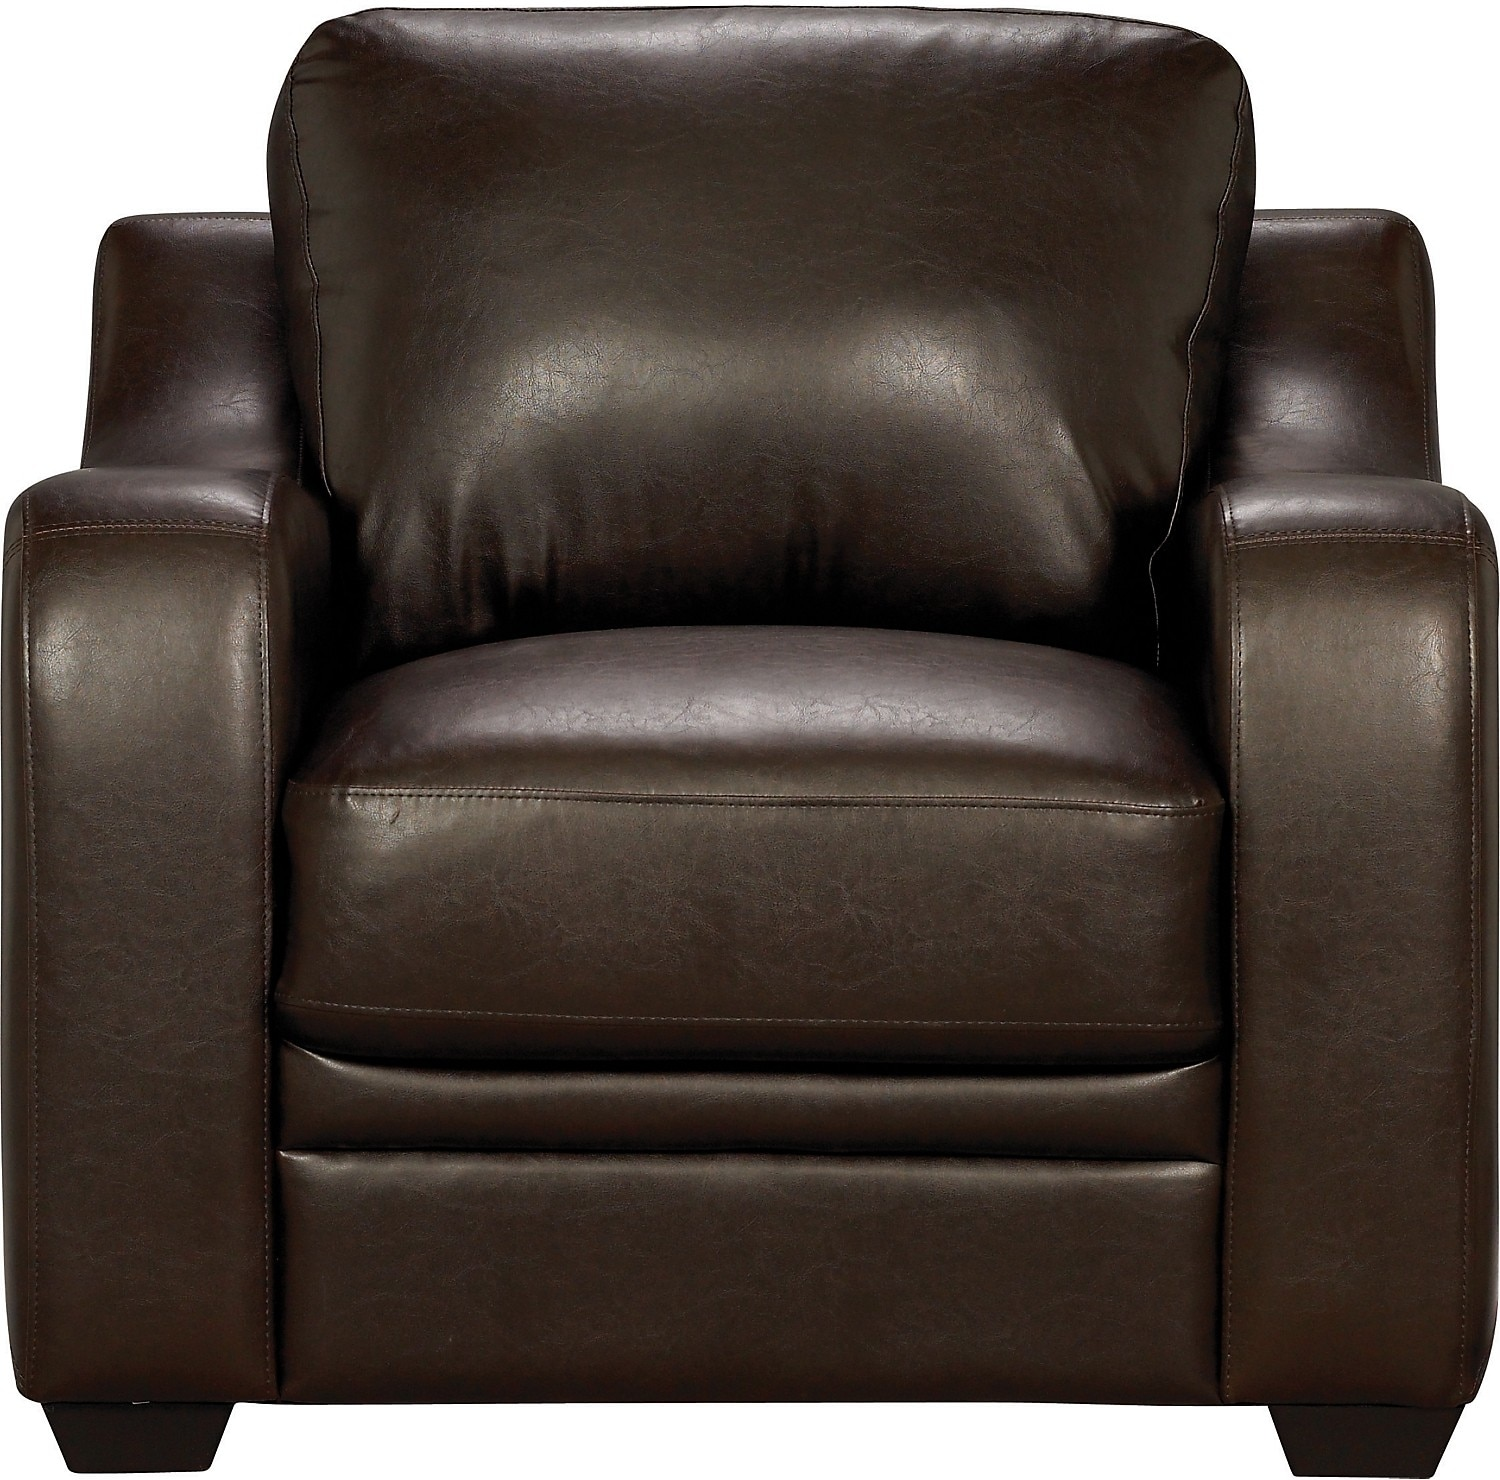 Chase Brown Faux Leather Chair